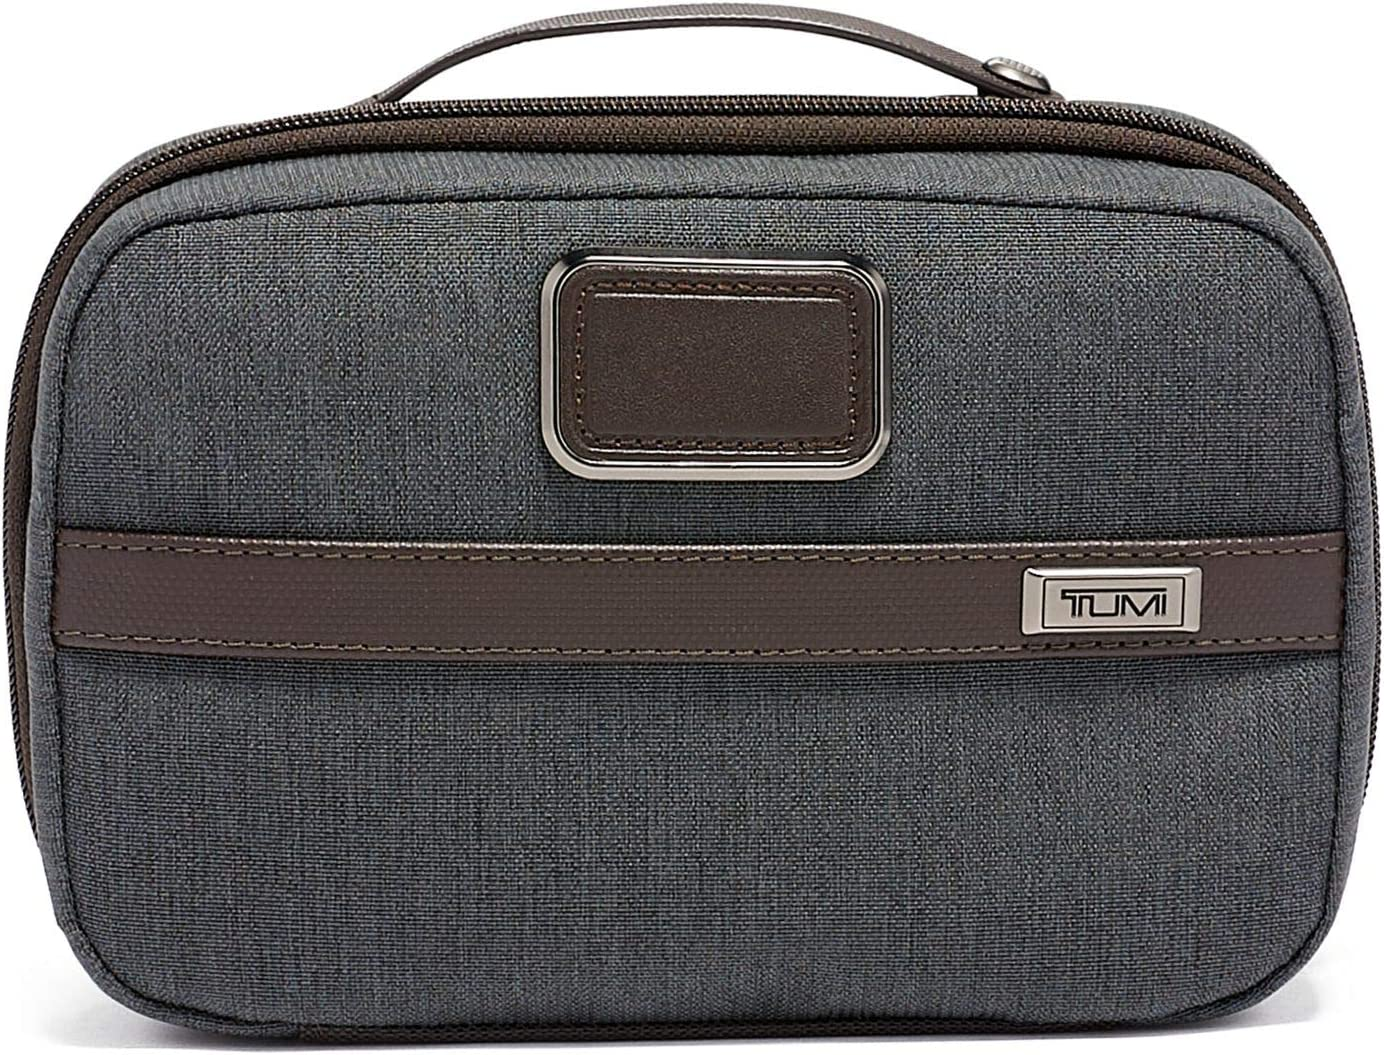 TUMI - Alpha 3 Split Travel Kit - Luggage Accessories Toiletry Bag for Men and Women - Anthracite